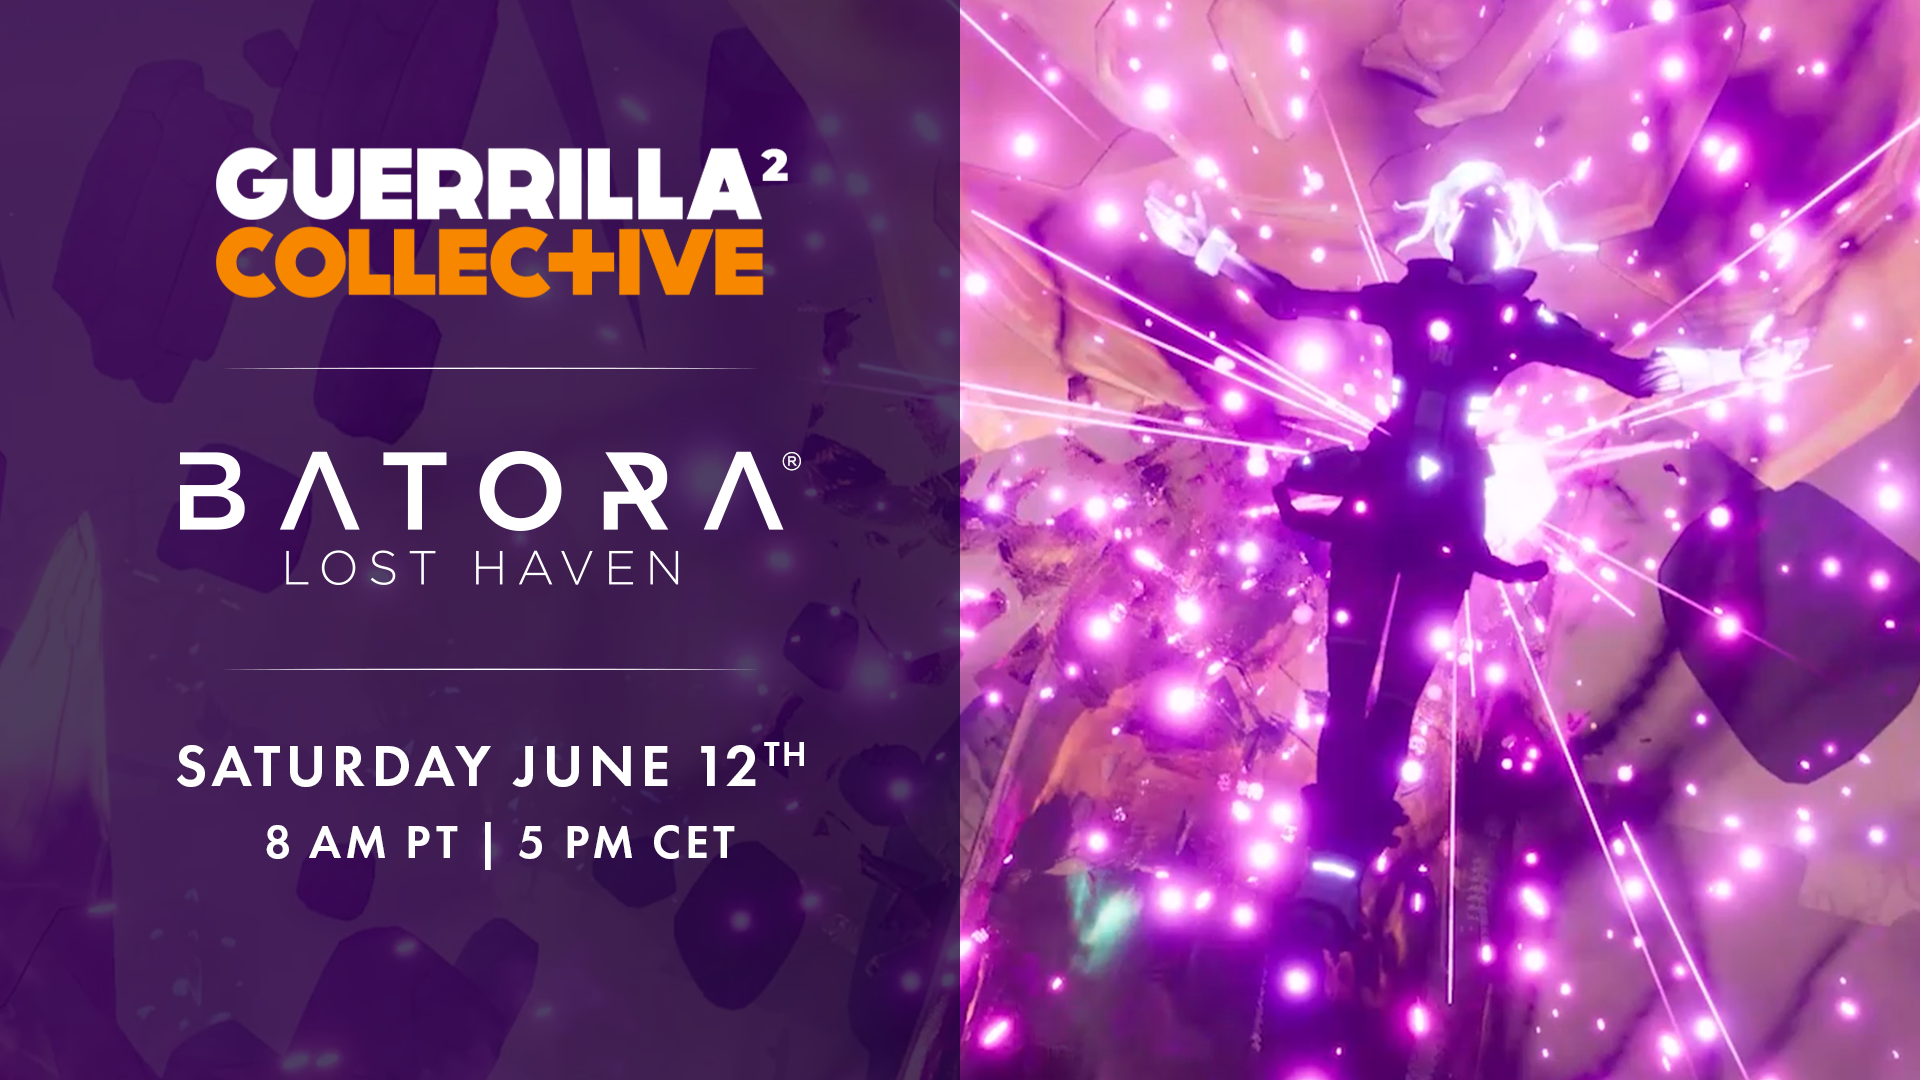 Batora: Lost Haven has been selected to be featured at Guerrilla Collective this Saturday!